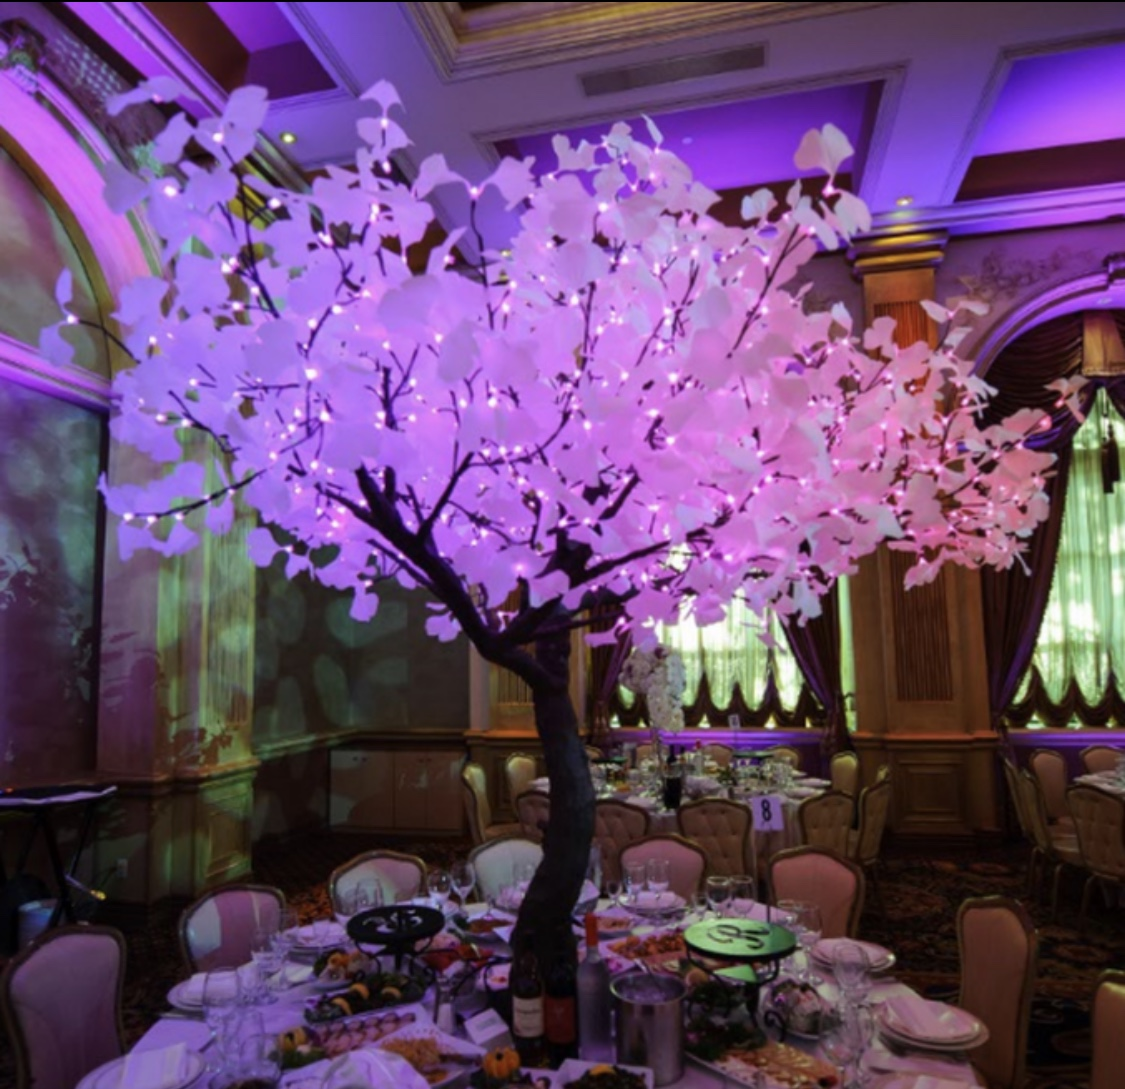 Rental Rentals: Lighted Trees Event Rentals/ Led Glowing Lighted Tree